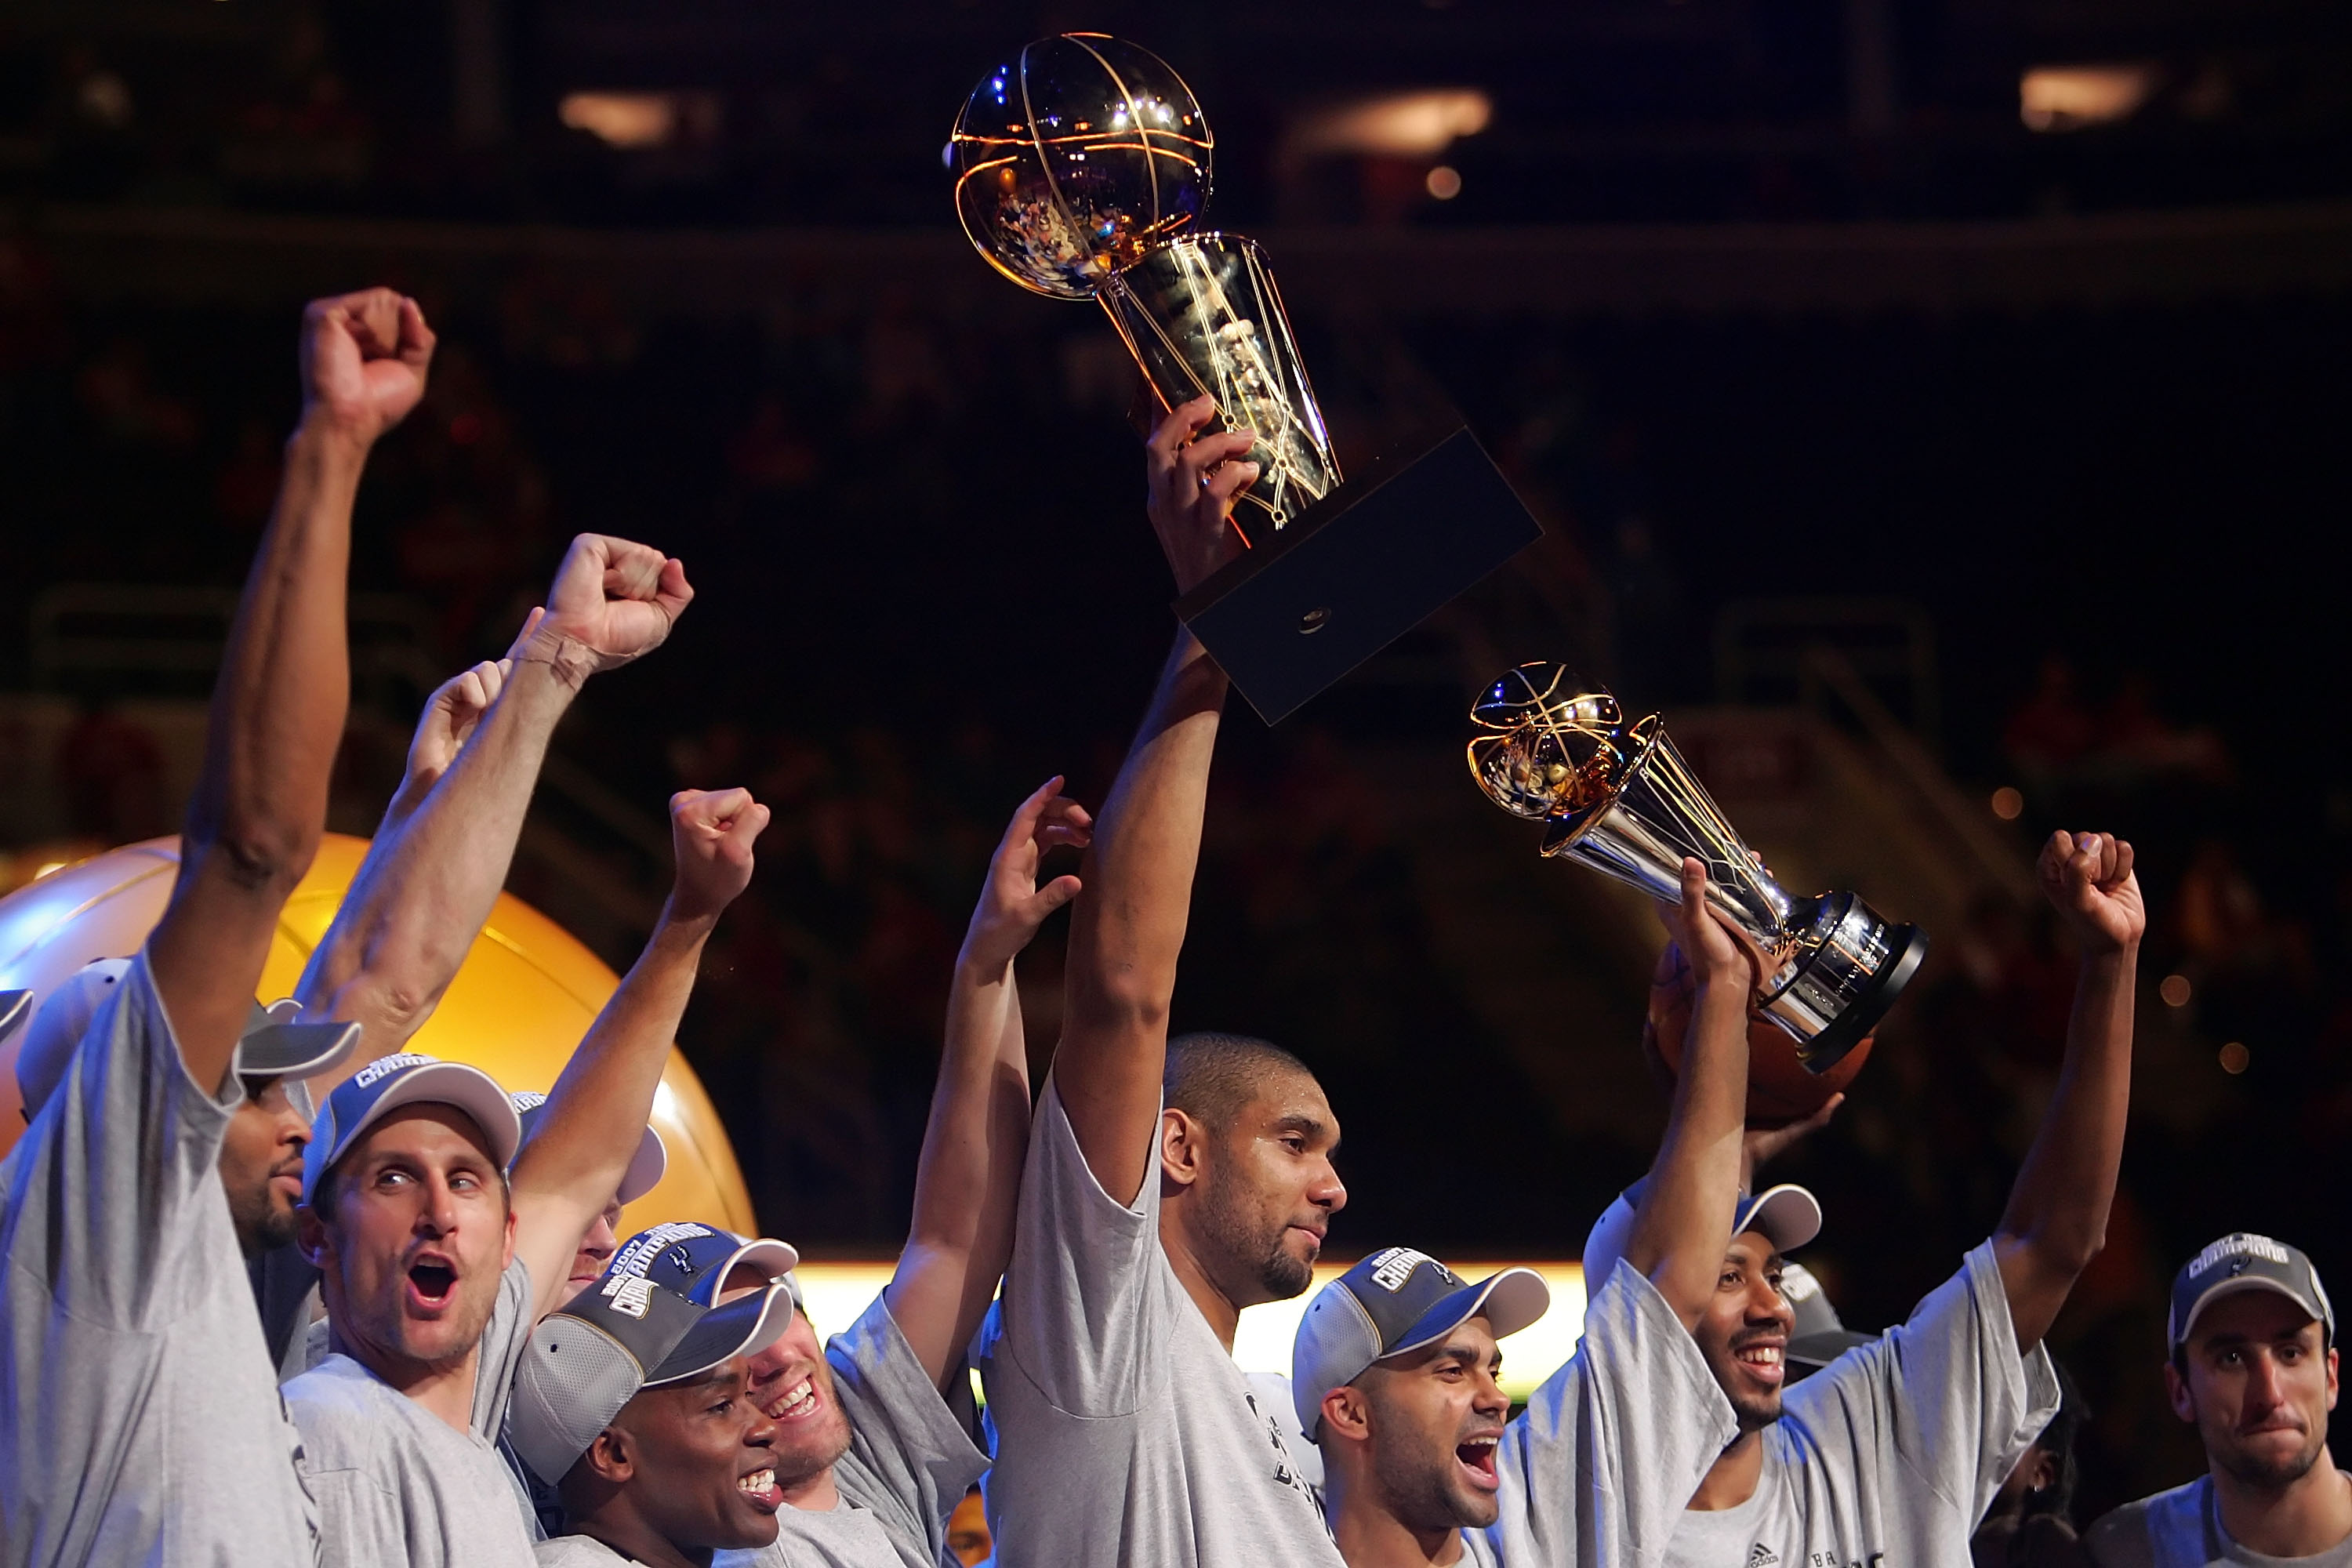 CLEVELAND - JUNE 14:  Members of the San Antonio Spurs celebrate the win as Tim Duncan #21 holds up the Larry O'Brien Championship Trophy and Tony Parker #9 holds up the MVP trophy after winning Game Four of the NBA Finals against the Cleveland Cavaliers